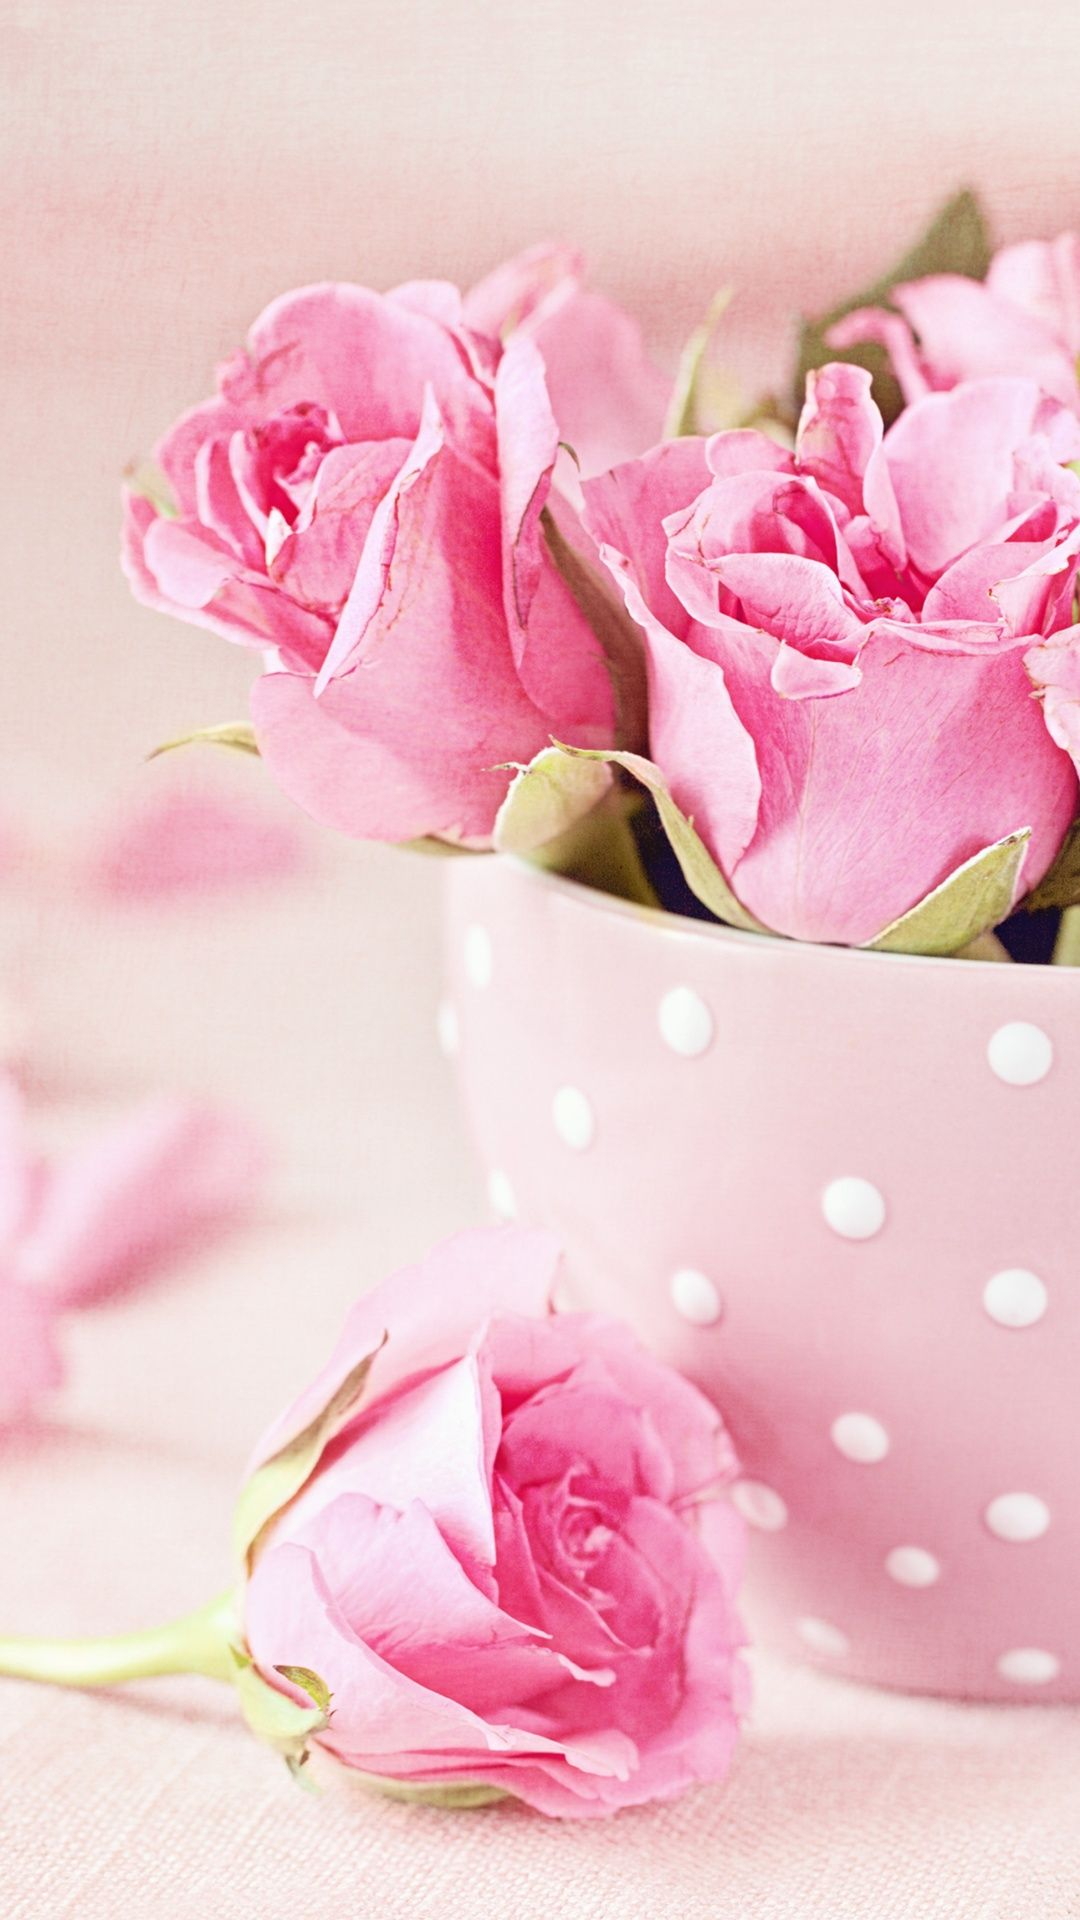 Pink Roses Cup Bouquet Wallpapers Pink Roses Rose Flower Wallpaper